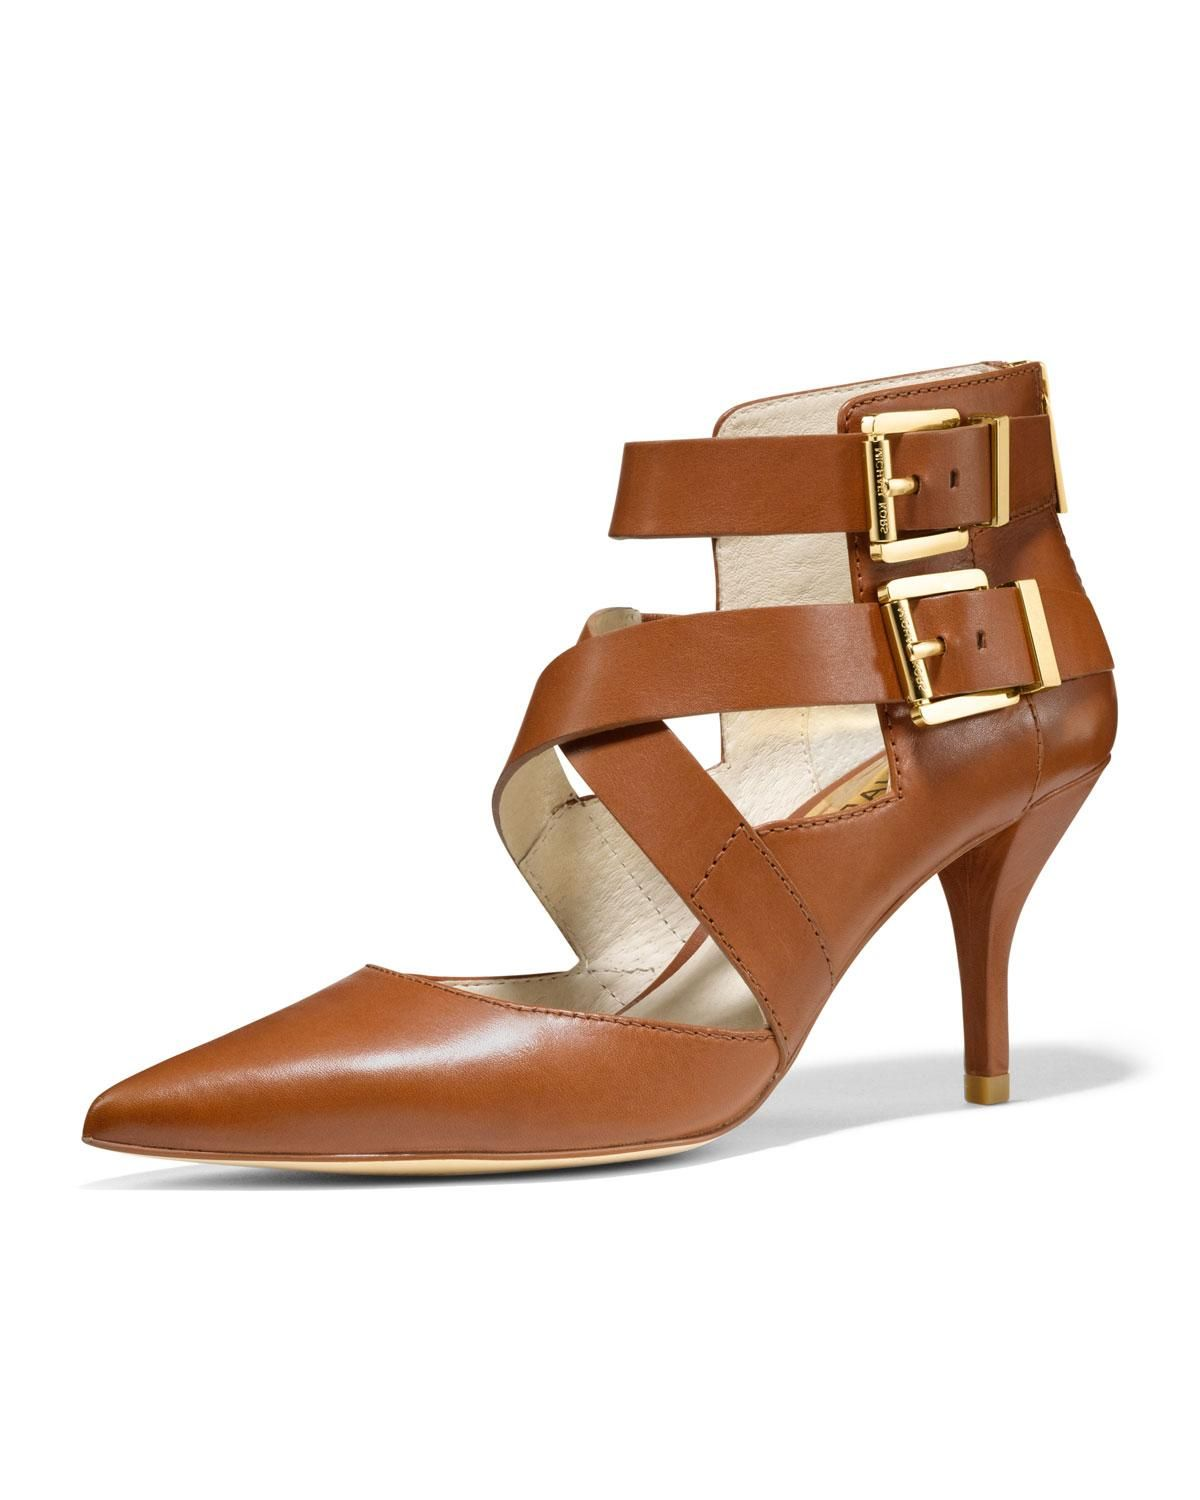 #cusp - this warm tobacco color of leather is my favorite brown! It's so rich and inviting and warm!  It can be worn with so many things!